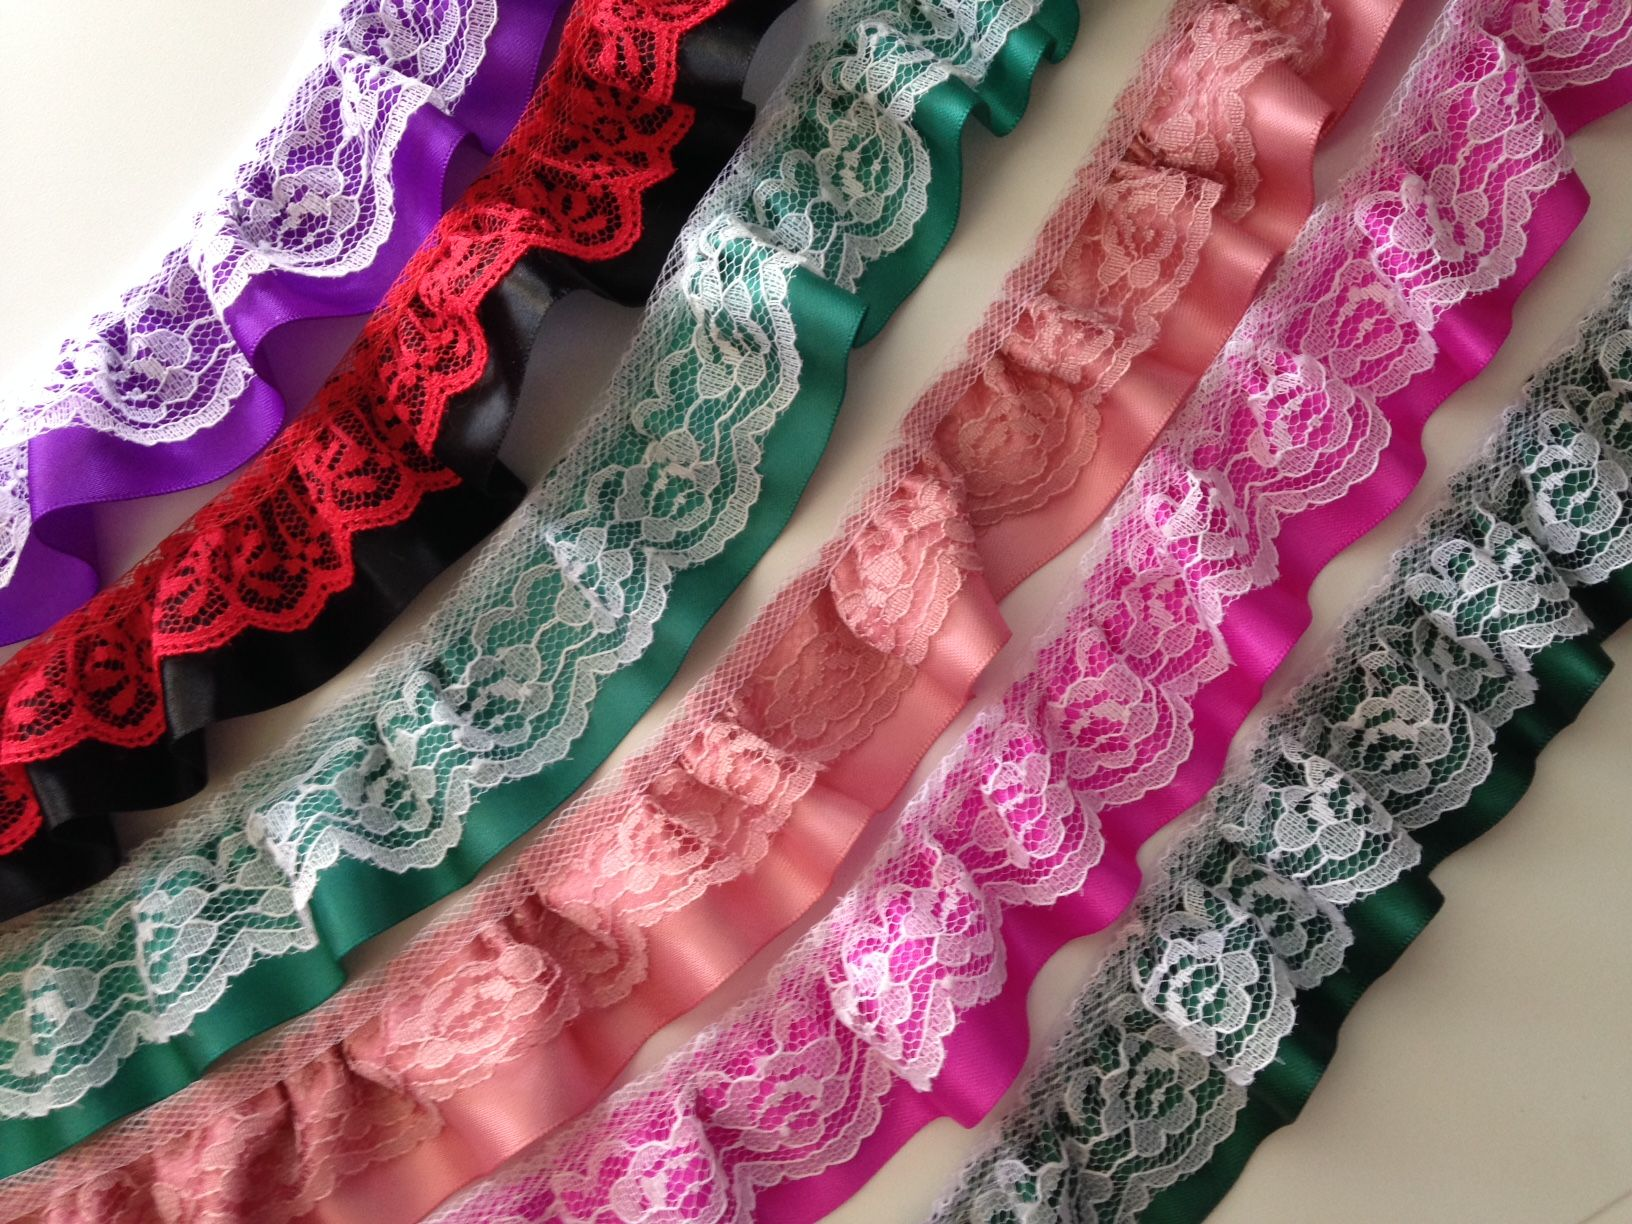 Decorative Lace TrimDoll Clothes Decorative Lace. Socks Trim Costumes Apparel Beaded Ruffled Lace Trim Gathered Lace Trim